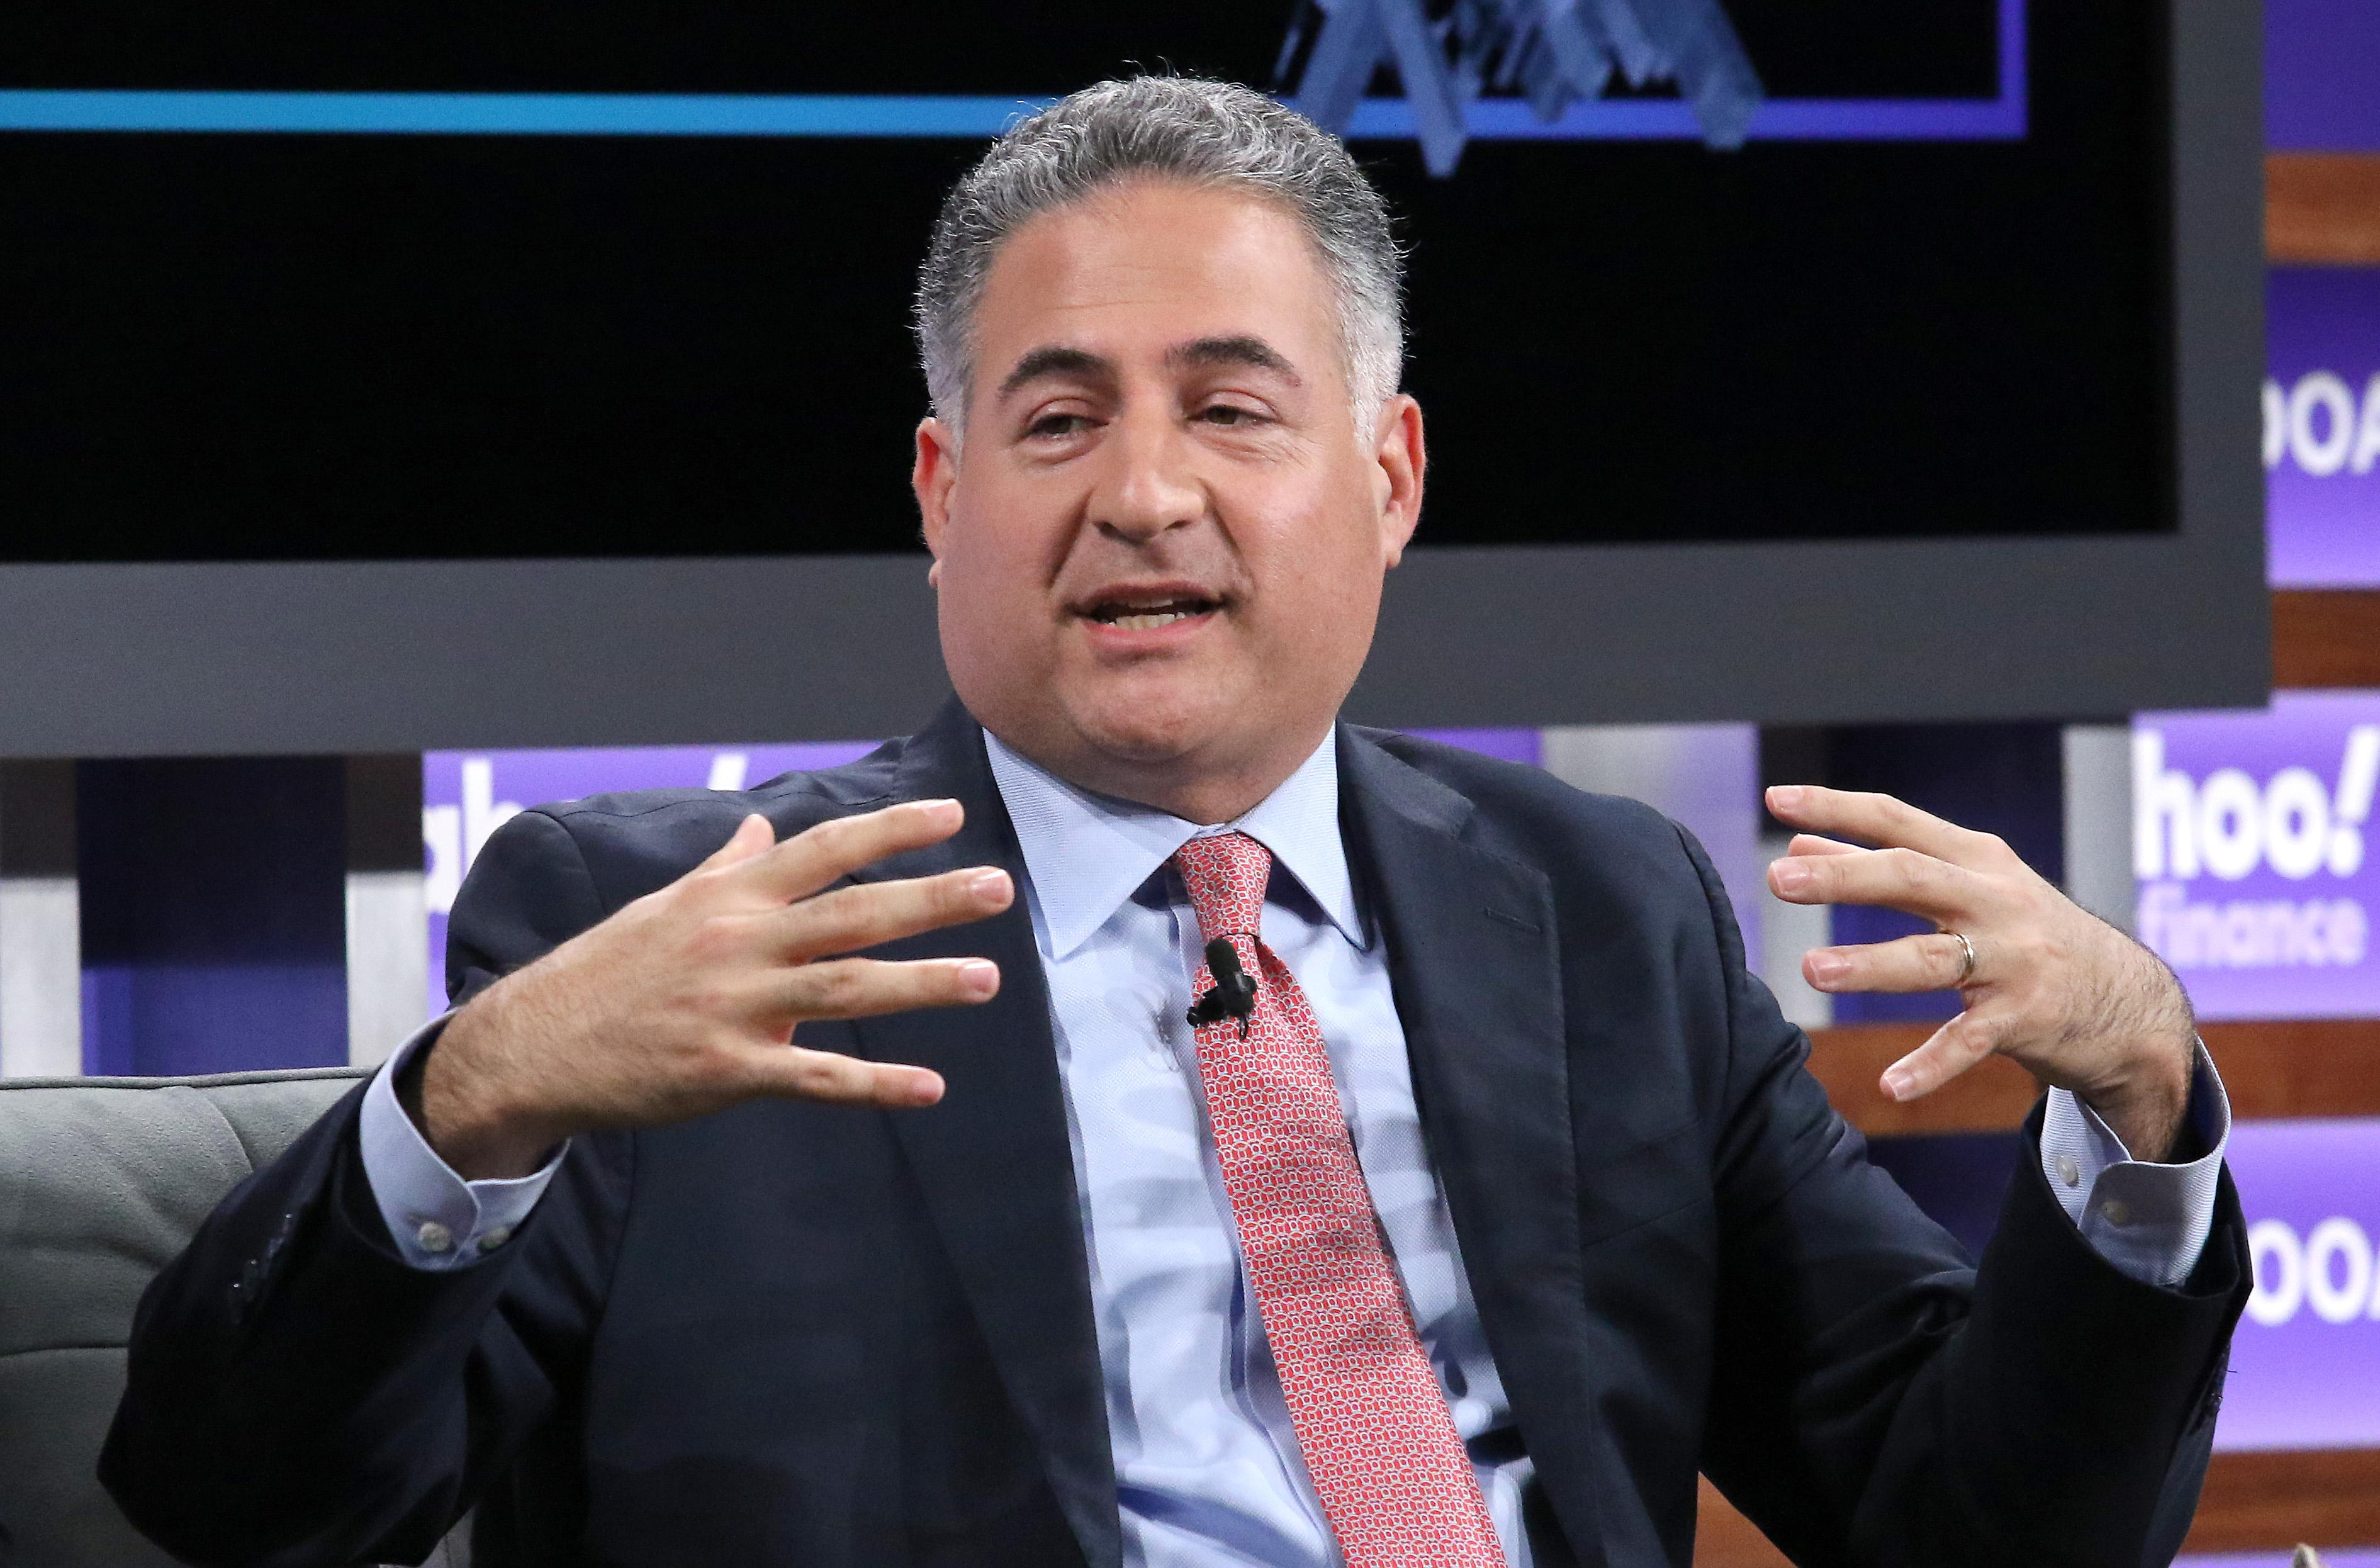 Deloitte CEO: Millennials are not 'that different' from past generations